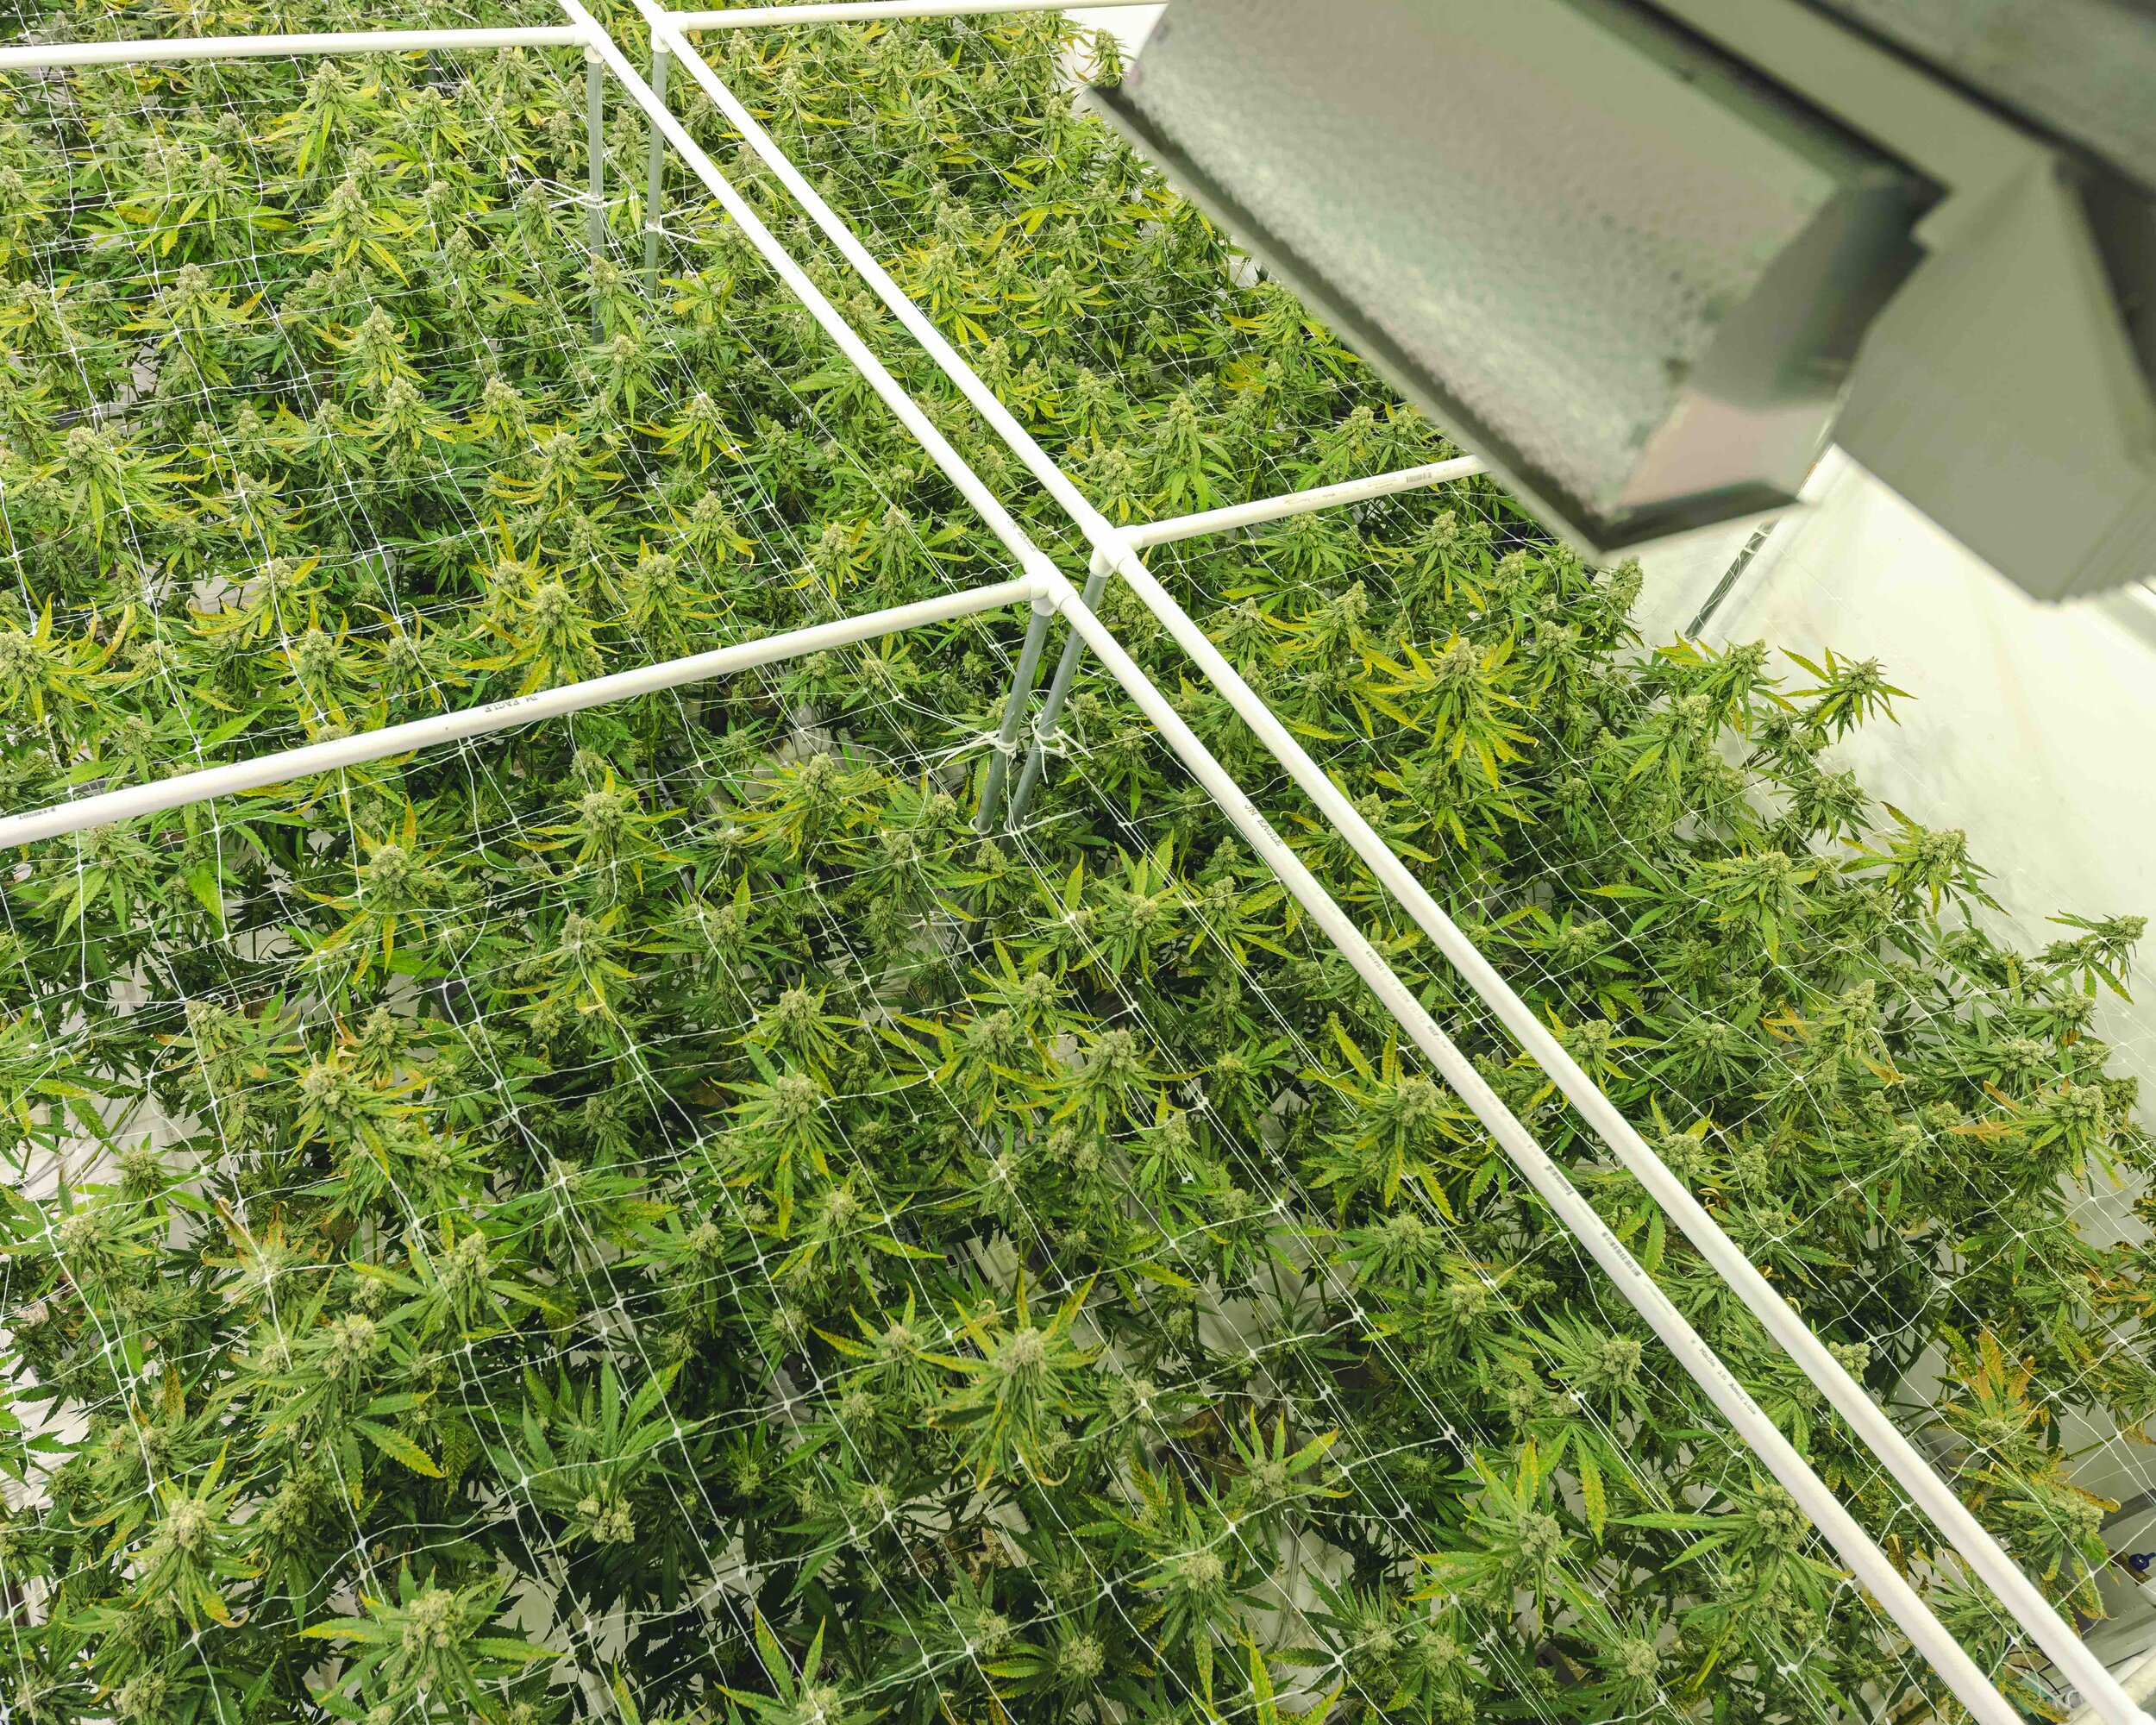 Top_View_of_Marijuana_Plant_Canopy_Growing_Under_Commercial_Warehouse_Lights.jpeg